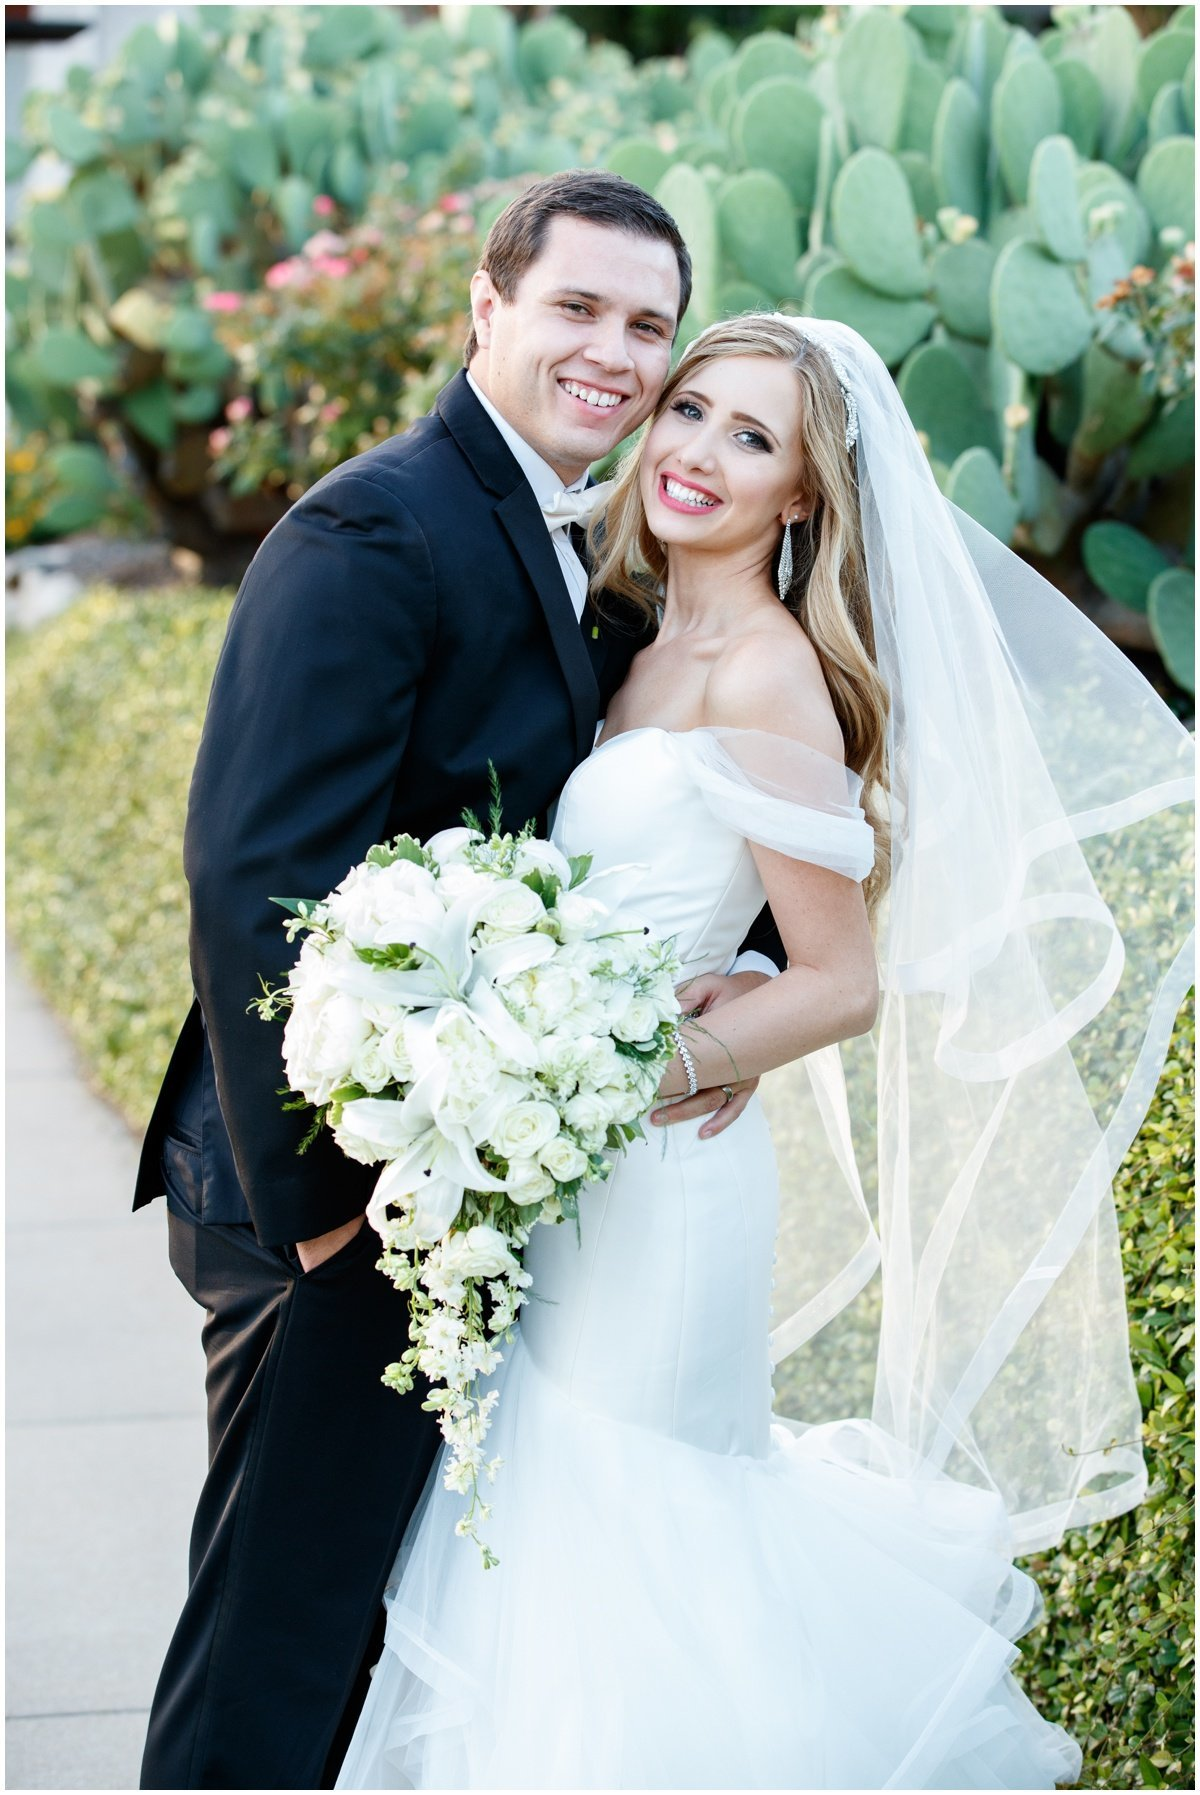 austin wedding photographer vintage villas bride groom portrait 4209 Eck Ln, Austin, TX 78734